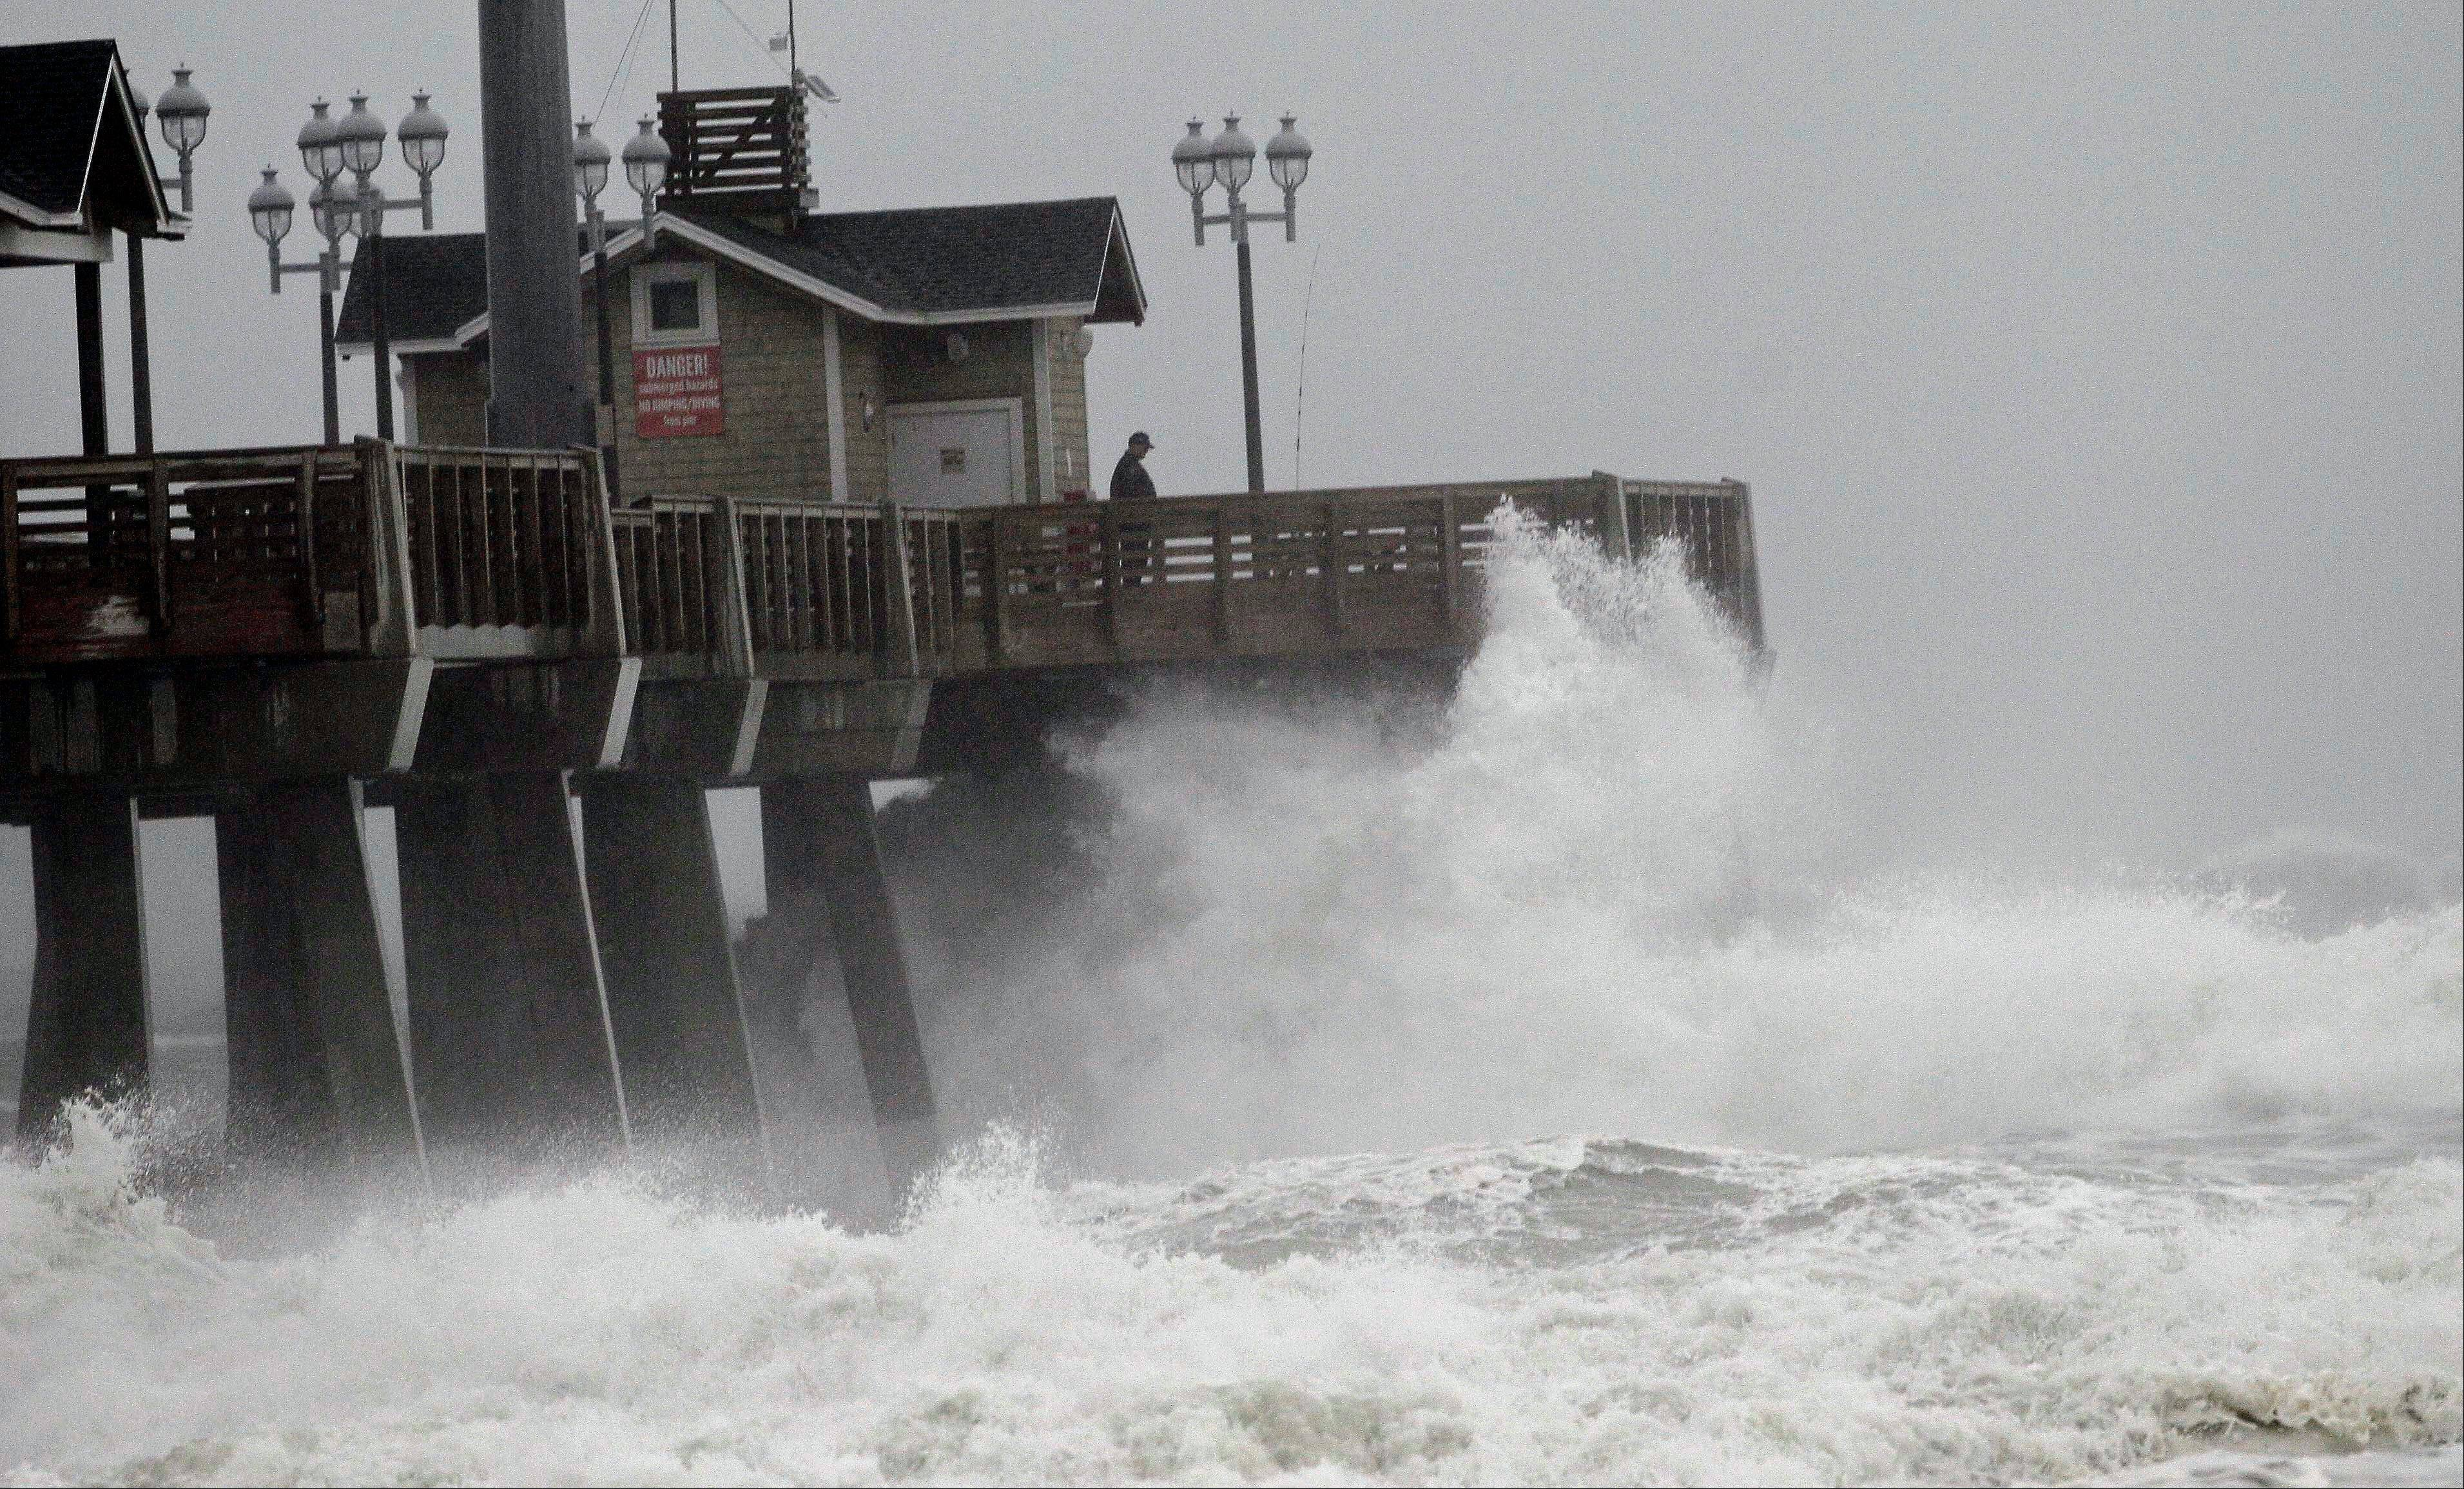 Large waves generated by Hurricane Sandy crash into Jeanette's Pier in Nags Head, N.C., Saturday, Oct. 27, 2012 as the storm moves up the east coast. Hurricane Sandy, upgraded again Saturday just hours after forecasters said it had weakened to a tropical storm, was barreling north from the Caribbean and was expected to make landfall early Tuesday near the Delaware coast.